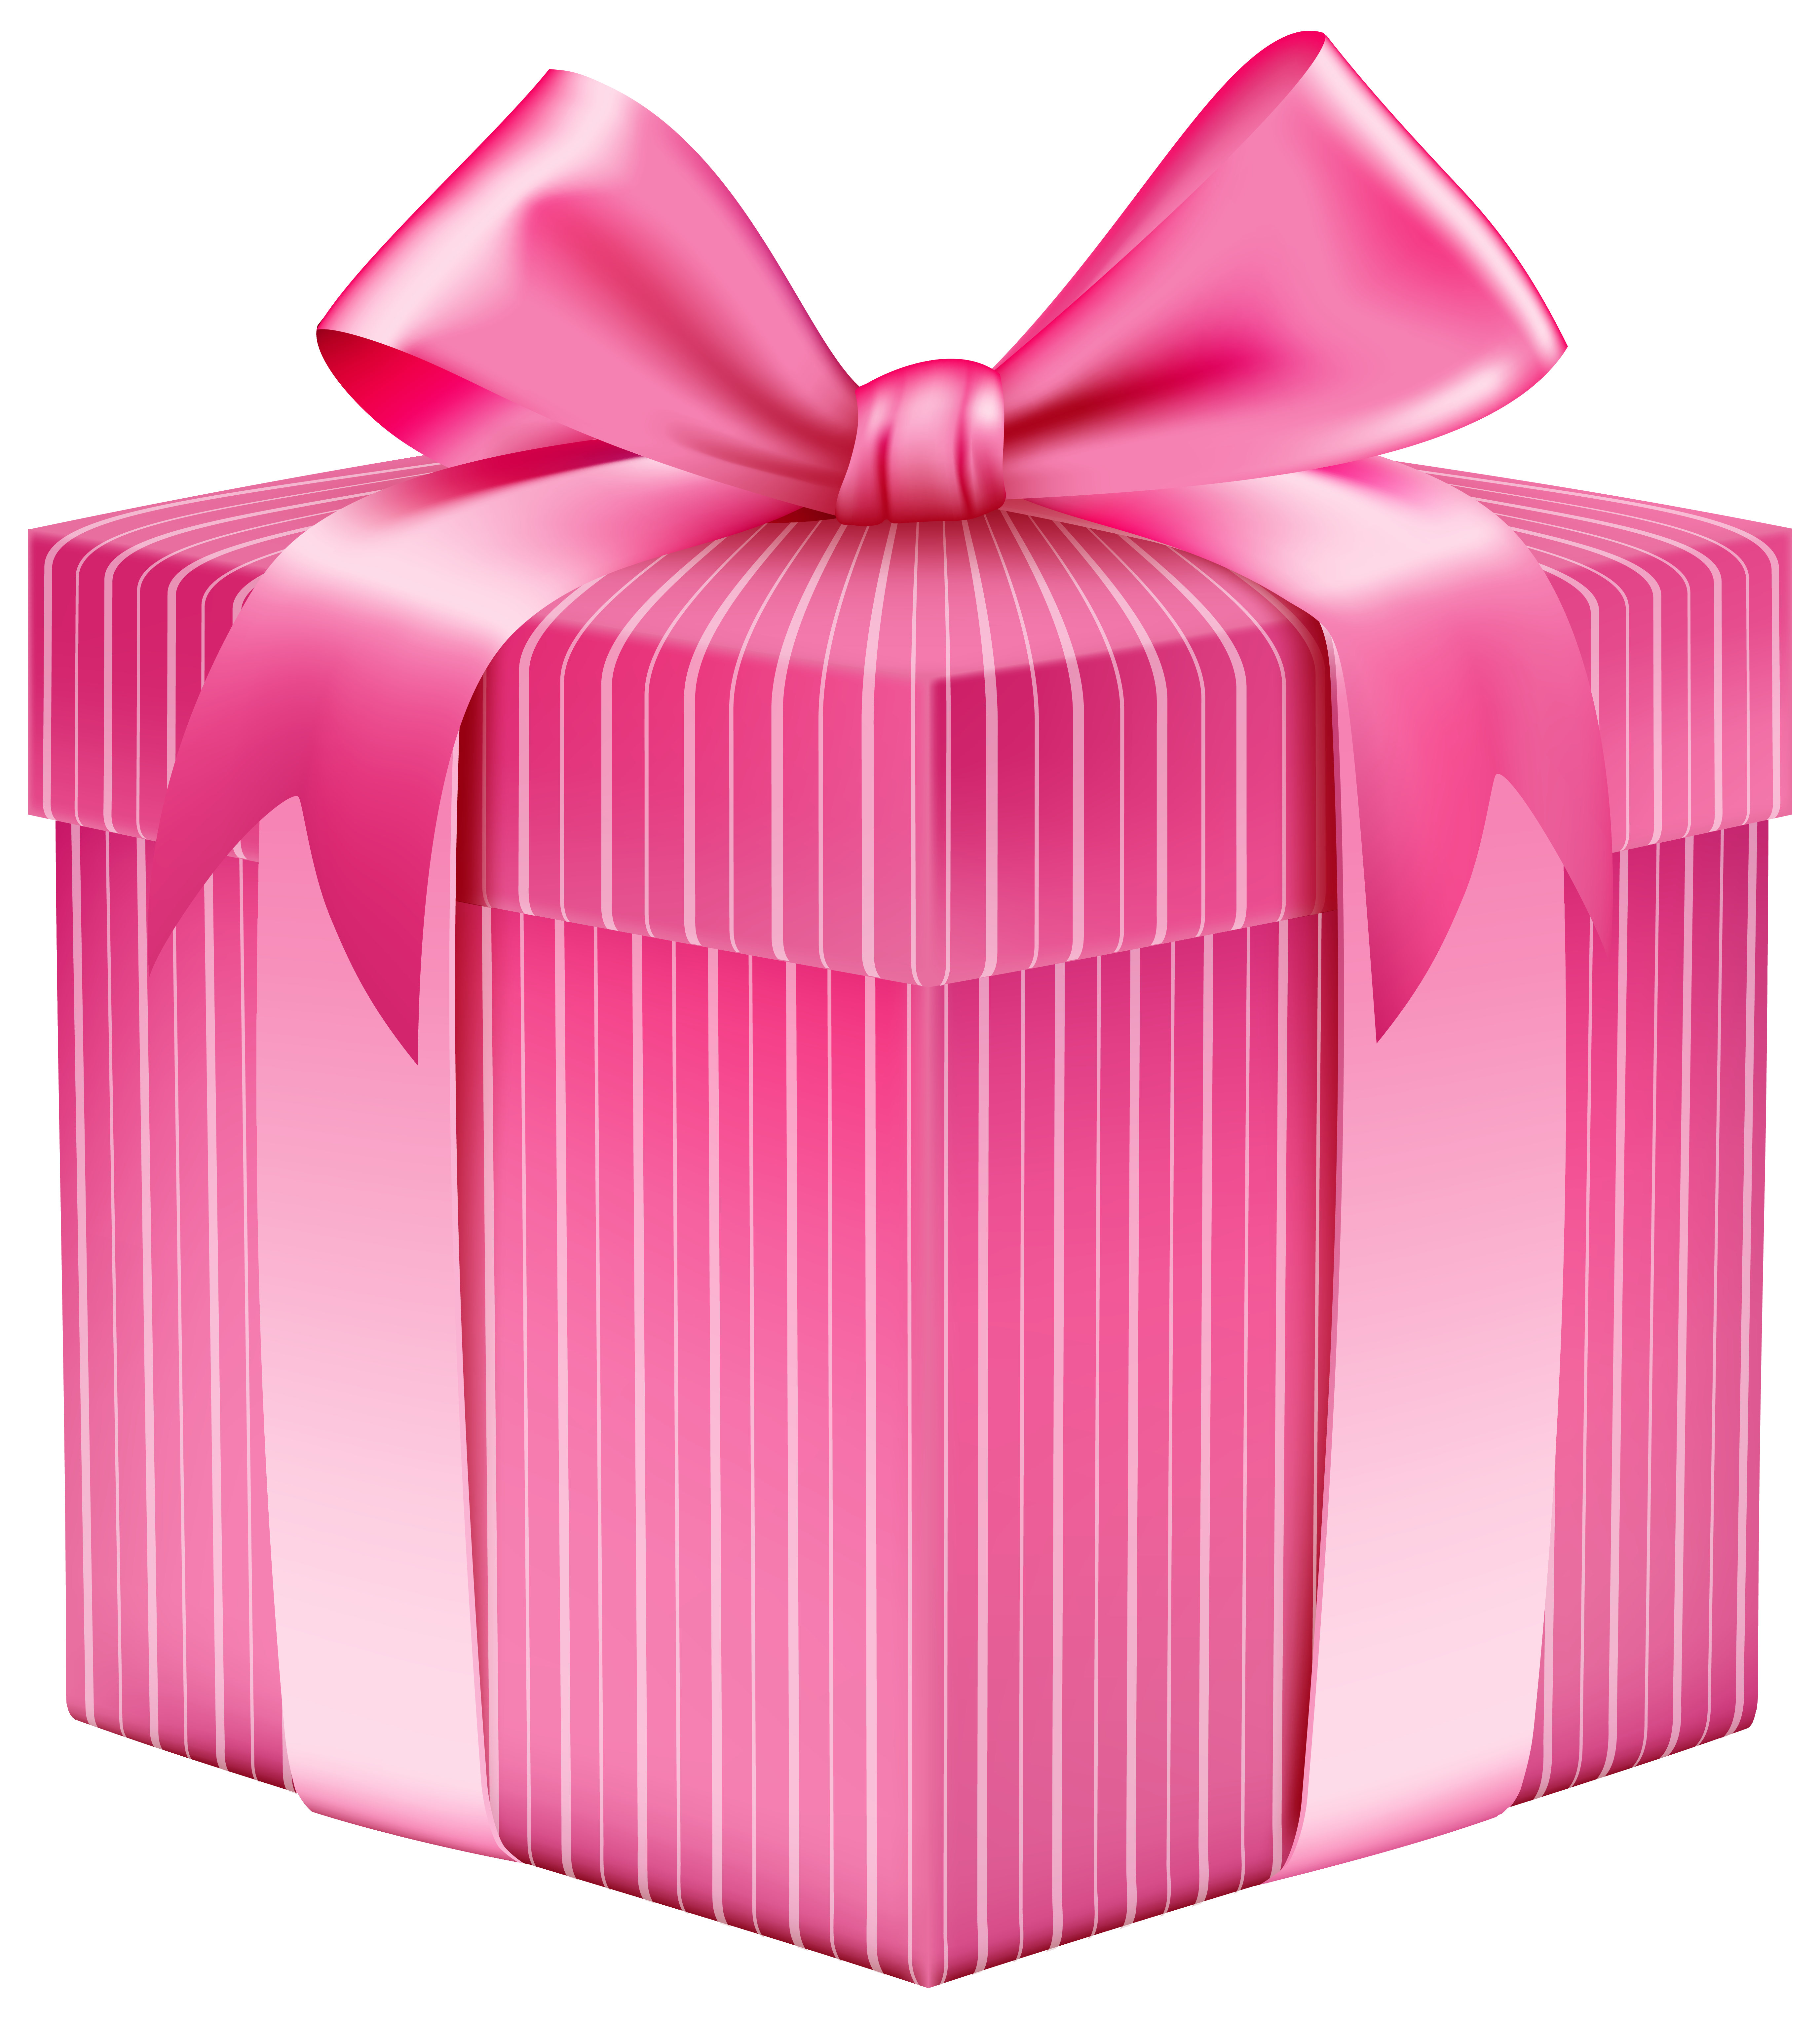 Striped box png picture. Gift clipart pink gift